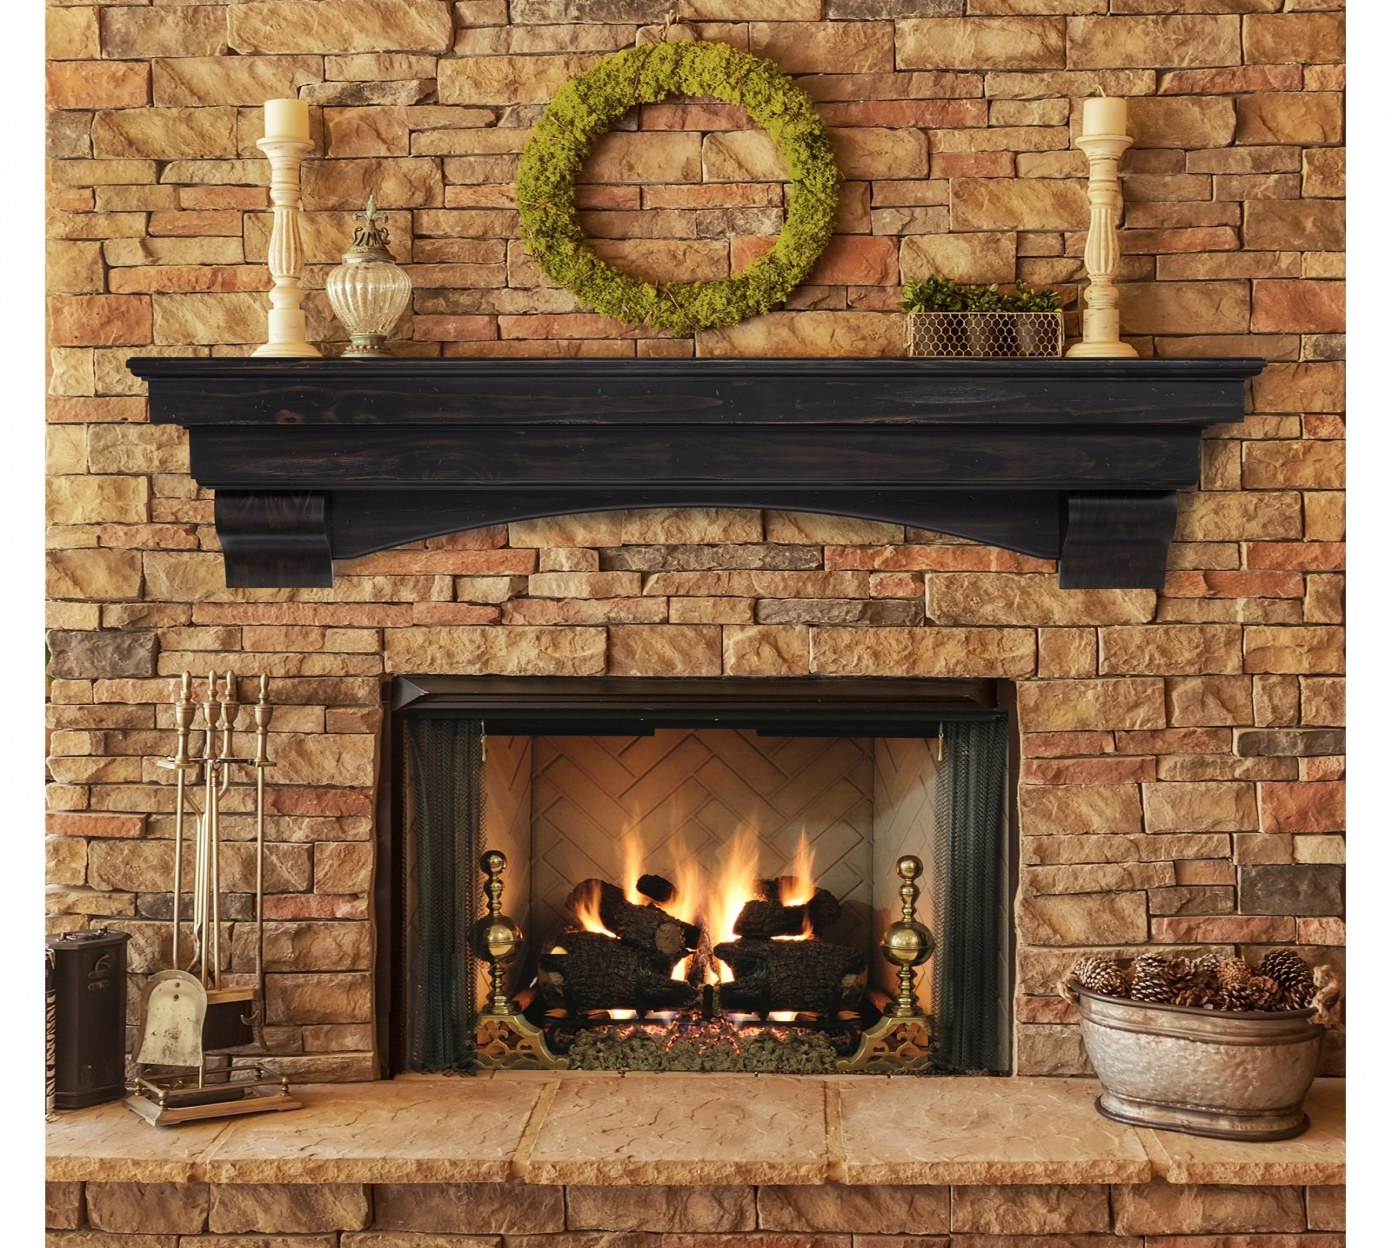 fireplace mantel shelf relatively fireplace surround with shelves ci22 roc munity of fireplace mantel shelf 2